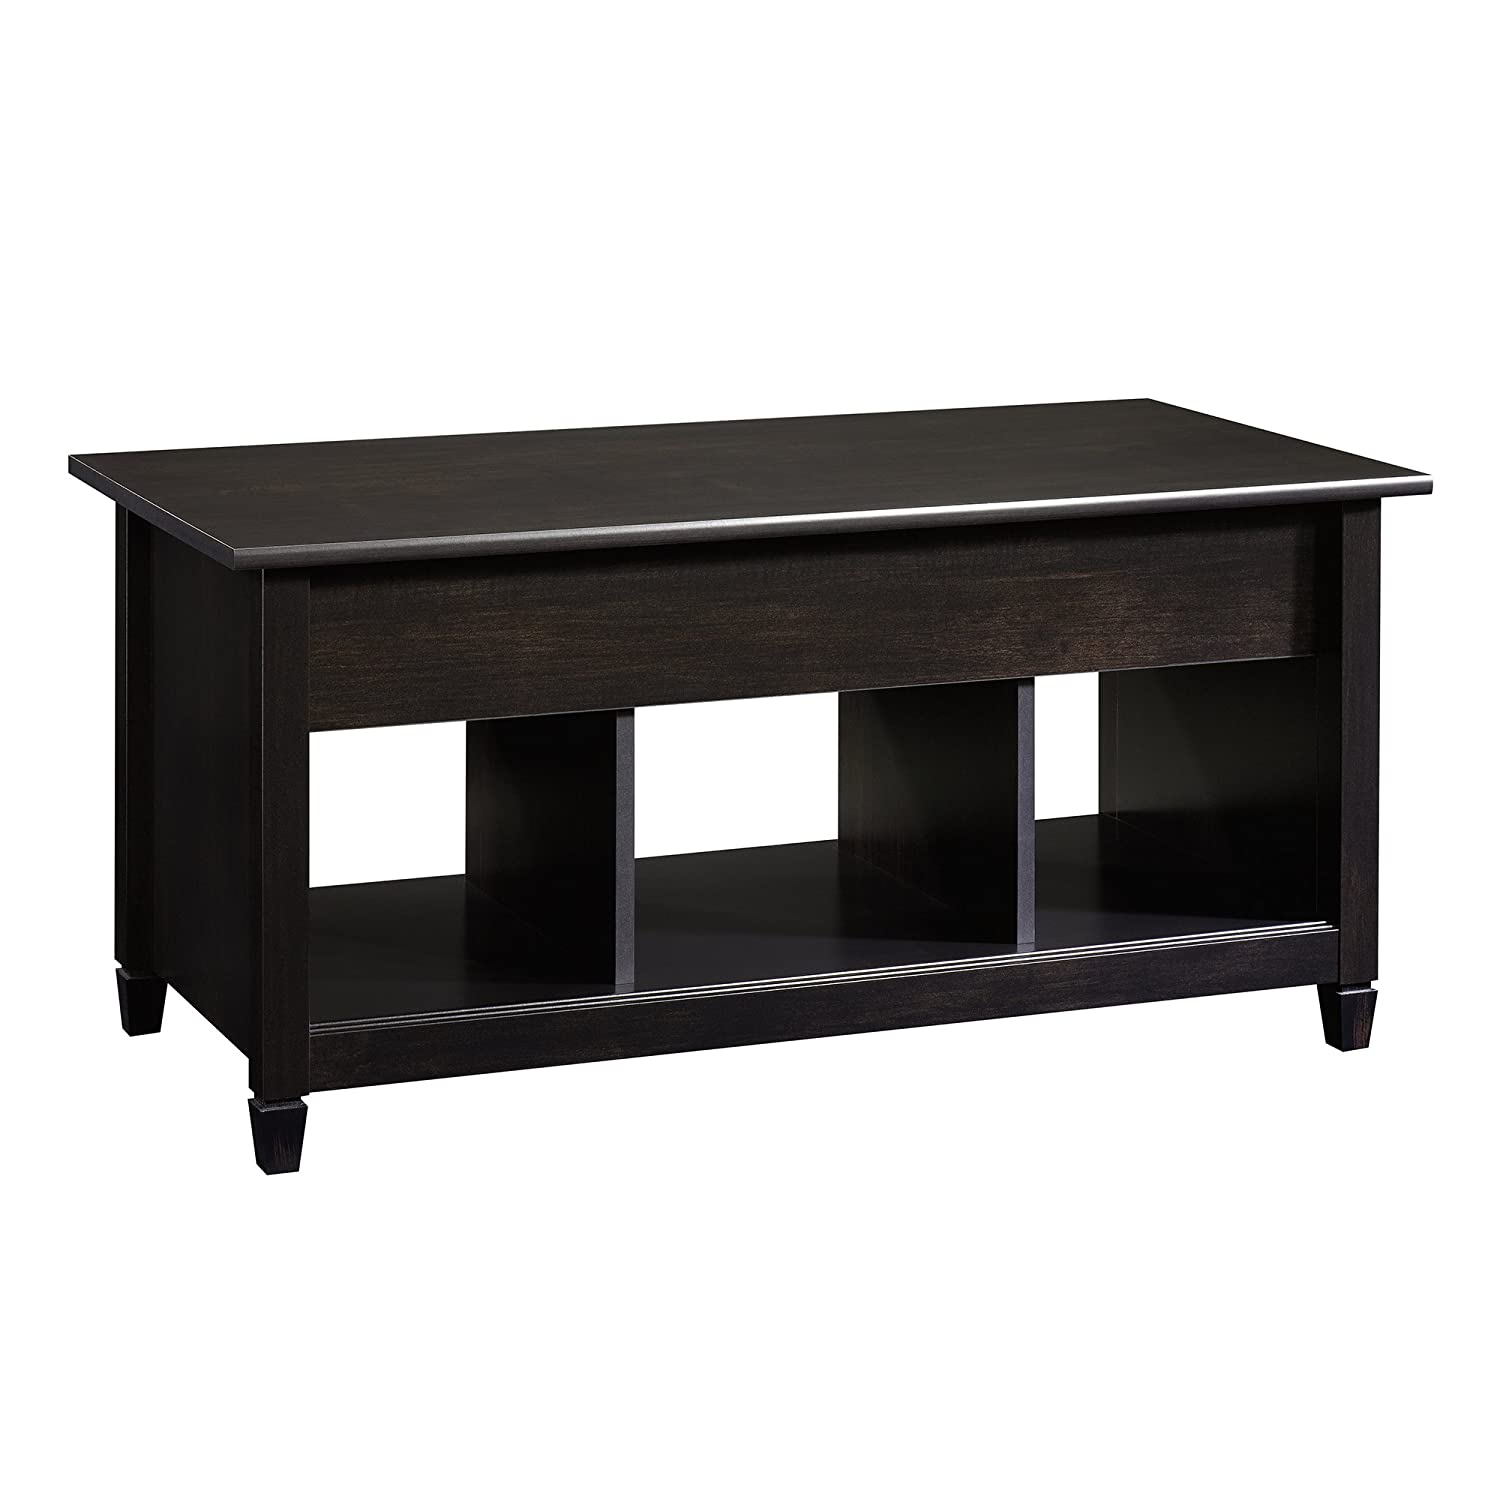 Amazon Com Sauder 414856 Edge Water Lift Top Coffee Table L 41 10